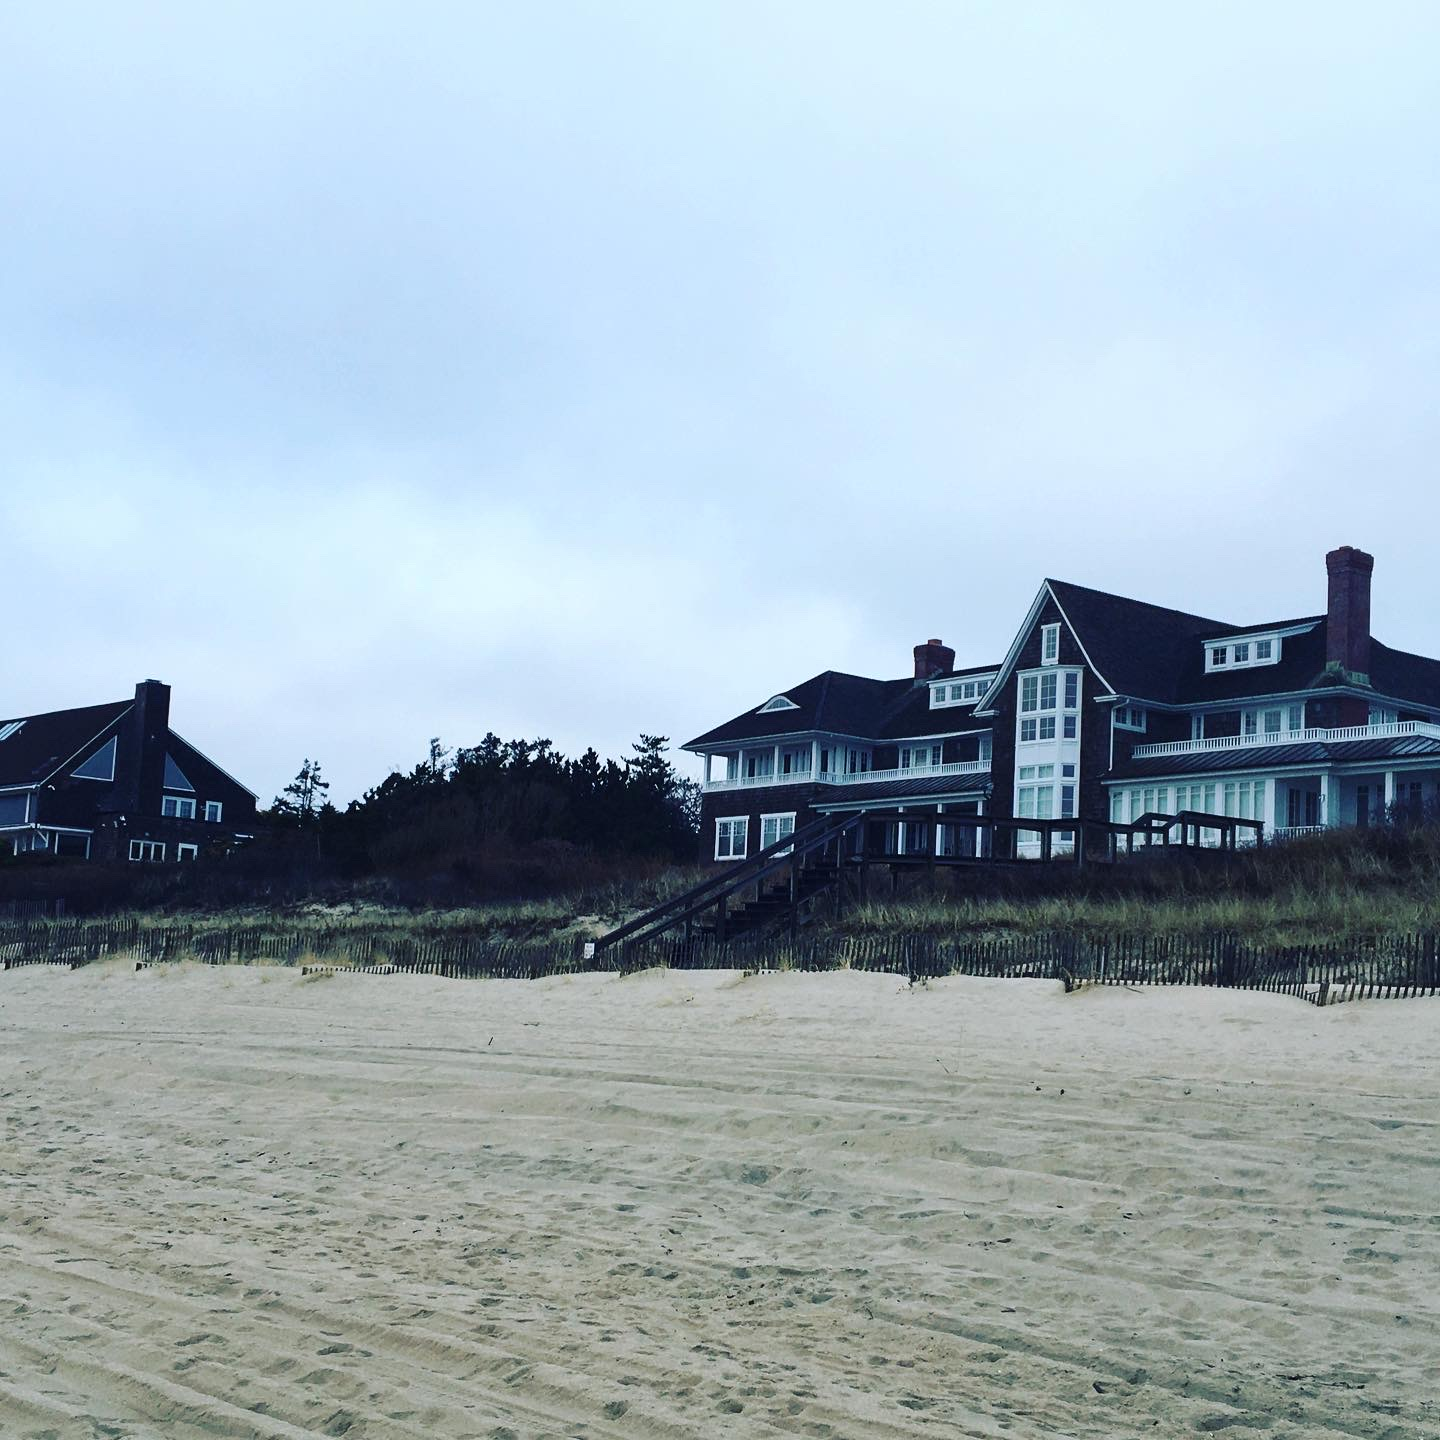 Finding a Summer Rental or Purchase in the Hamptons